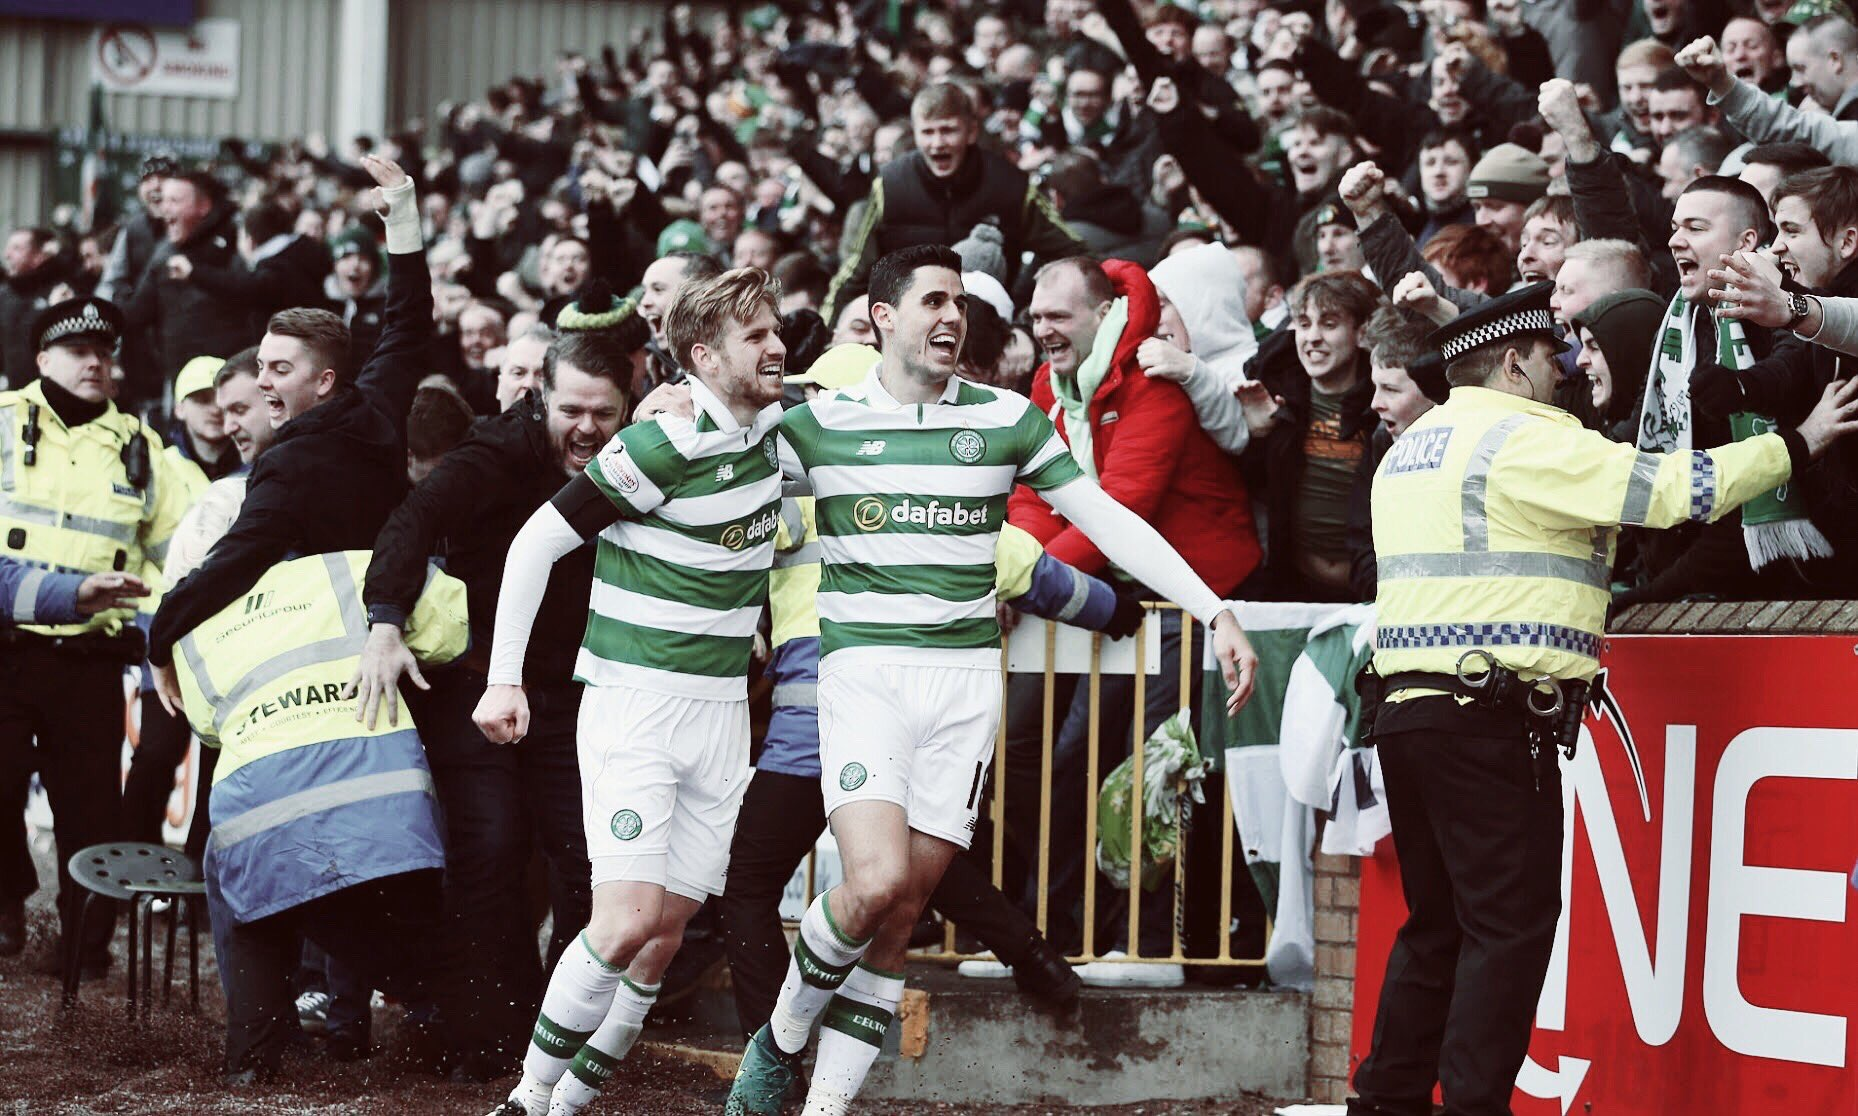 The Rogic Song – 'Tom Comes From The Land Down Under'